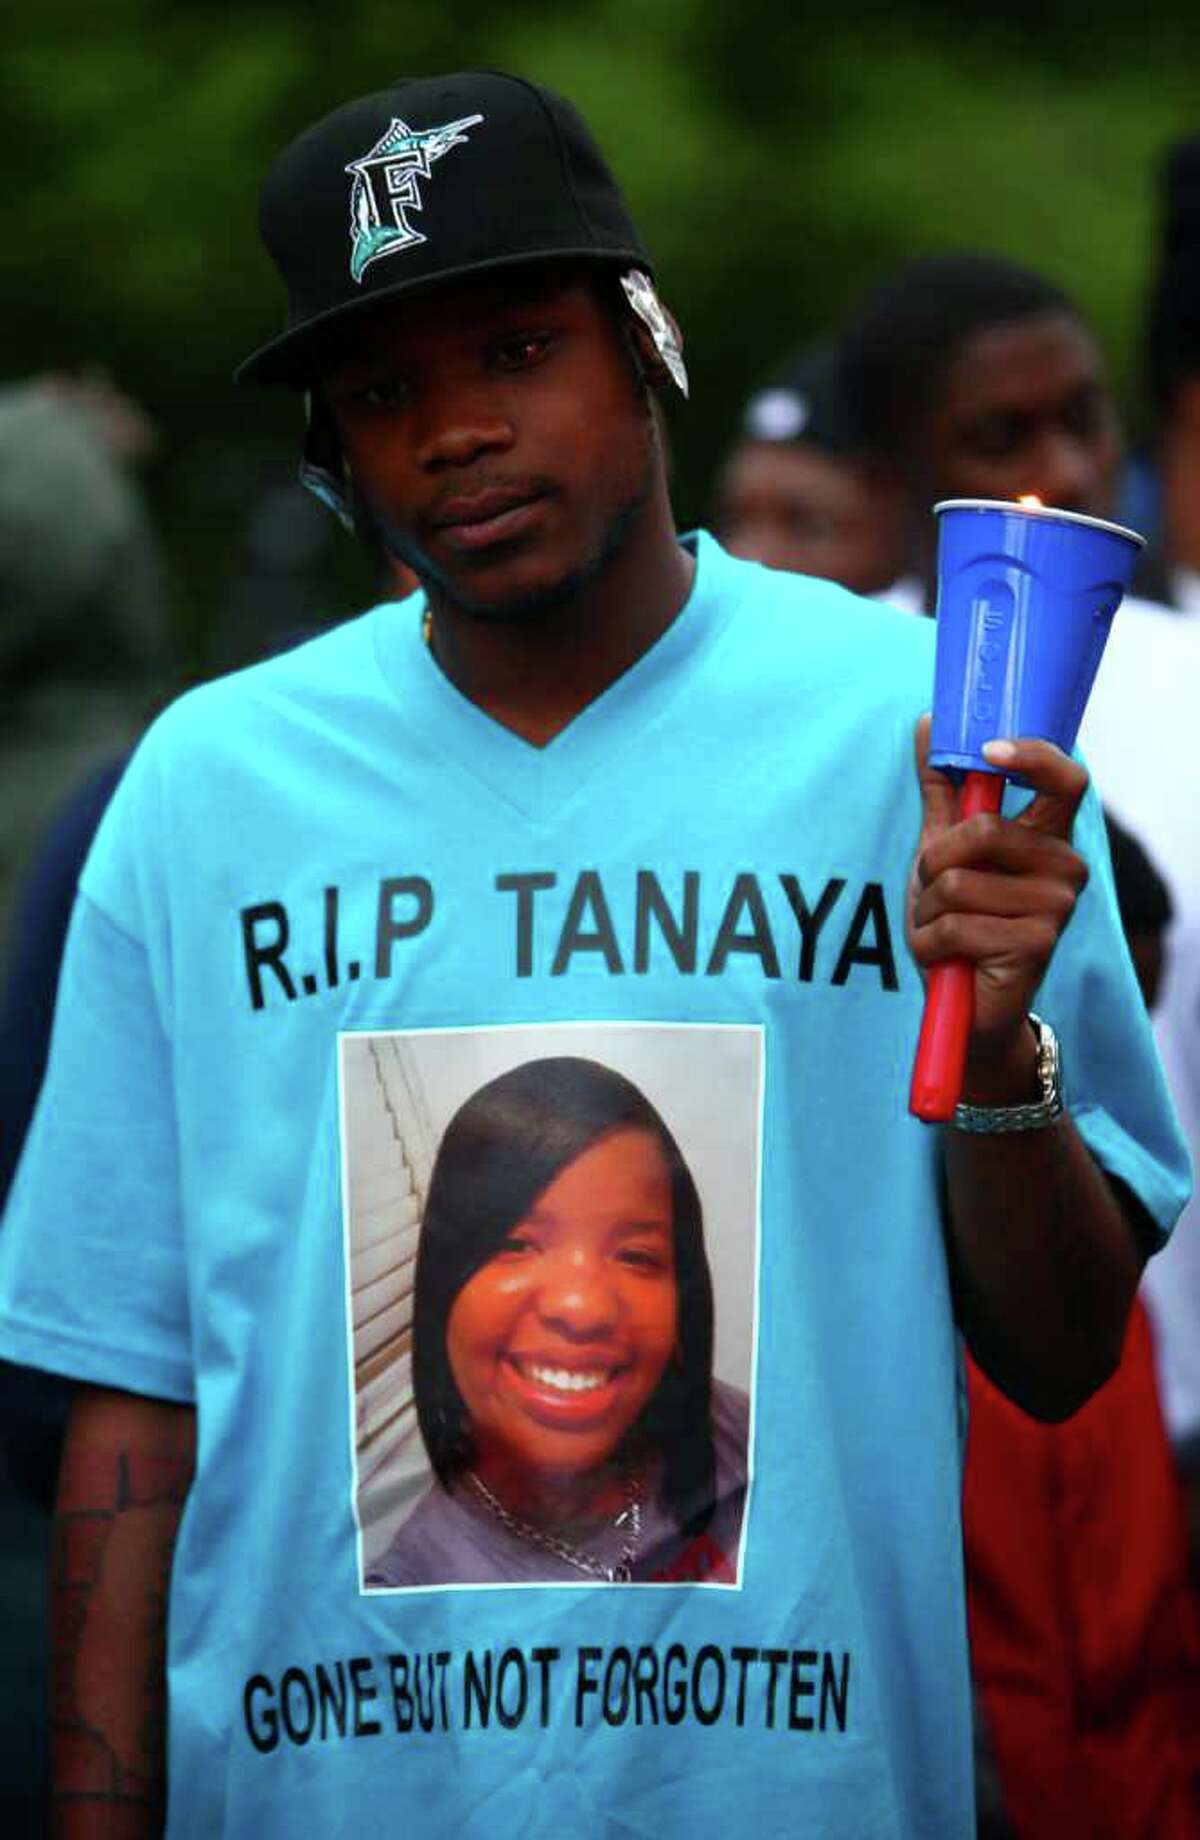 Aufu Snow wears a shirt memorializing Tanaya Gilbert, a 19 year-old woman shot and killed in South Seattle. A vigil was held for the woman, who was pregnant, on Thursday, July 14, 2011 on 54th Avenue South, site of the shooting. More shots were fired as the vigil was winding down. Police said someone fired on a blue and silver Dodge Magnum with chrome wheels. The car sped off after the shooting.